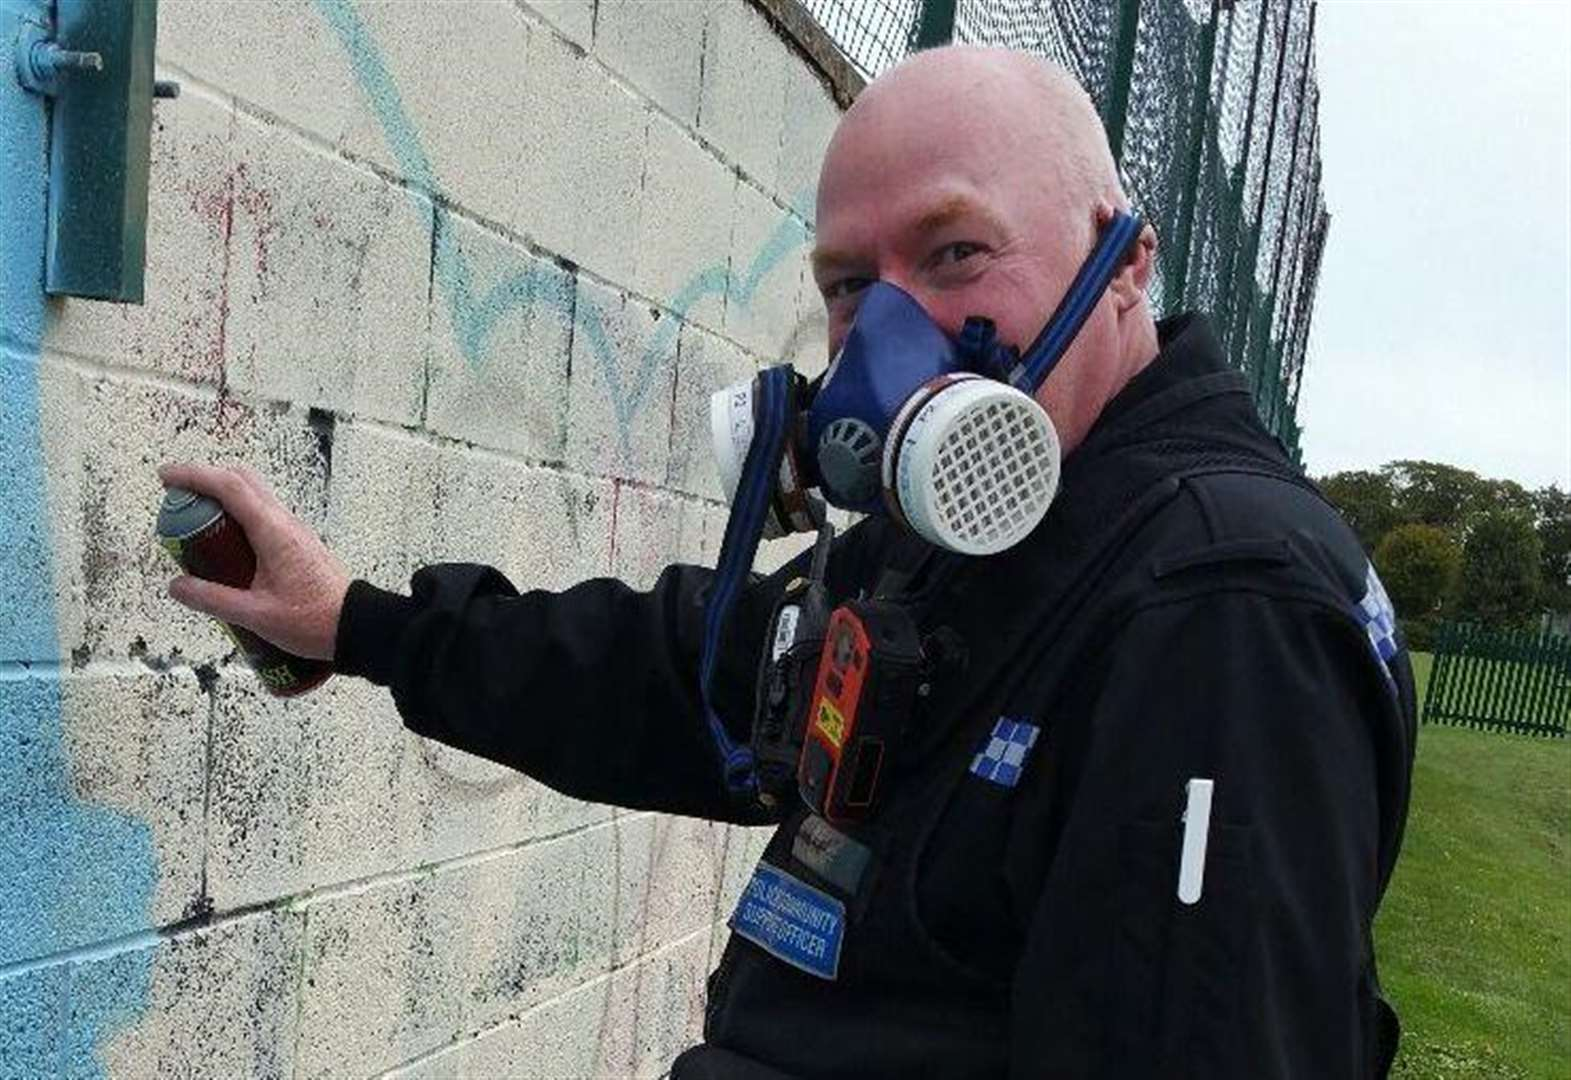 Officer leads the way in street-art mural